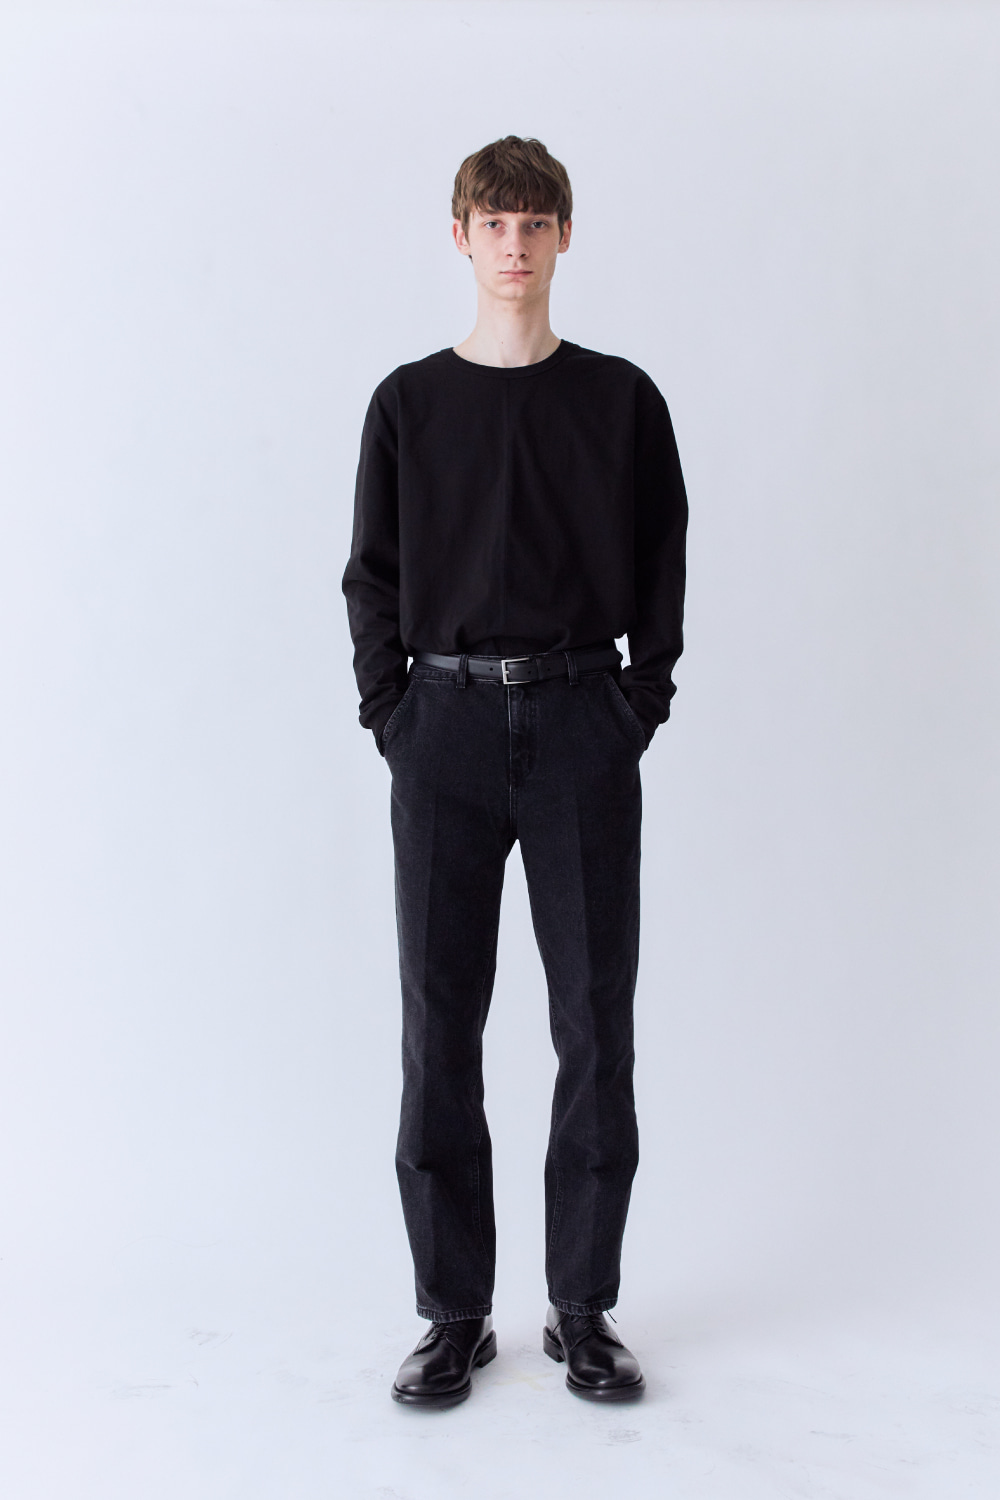 OURSCOPE아워스코프 Two Panelded Long Sleeve (Black)